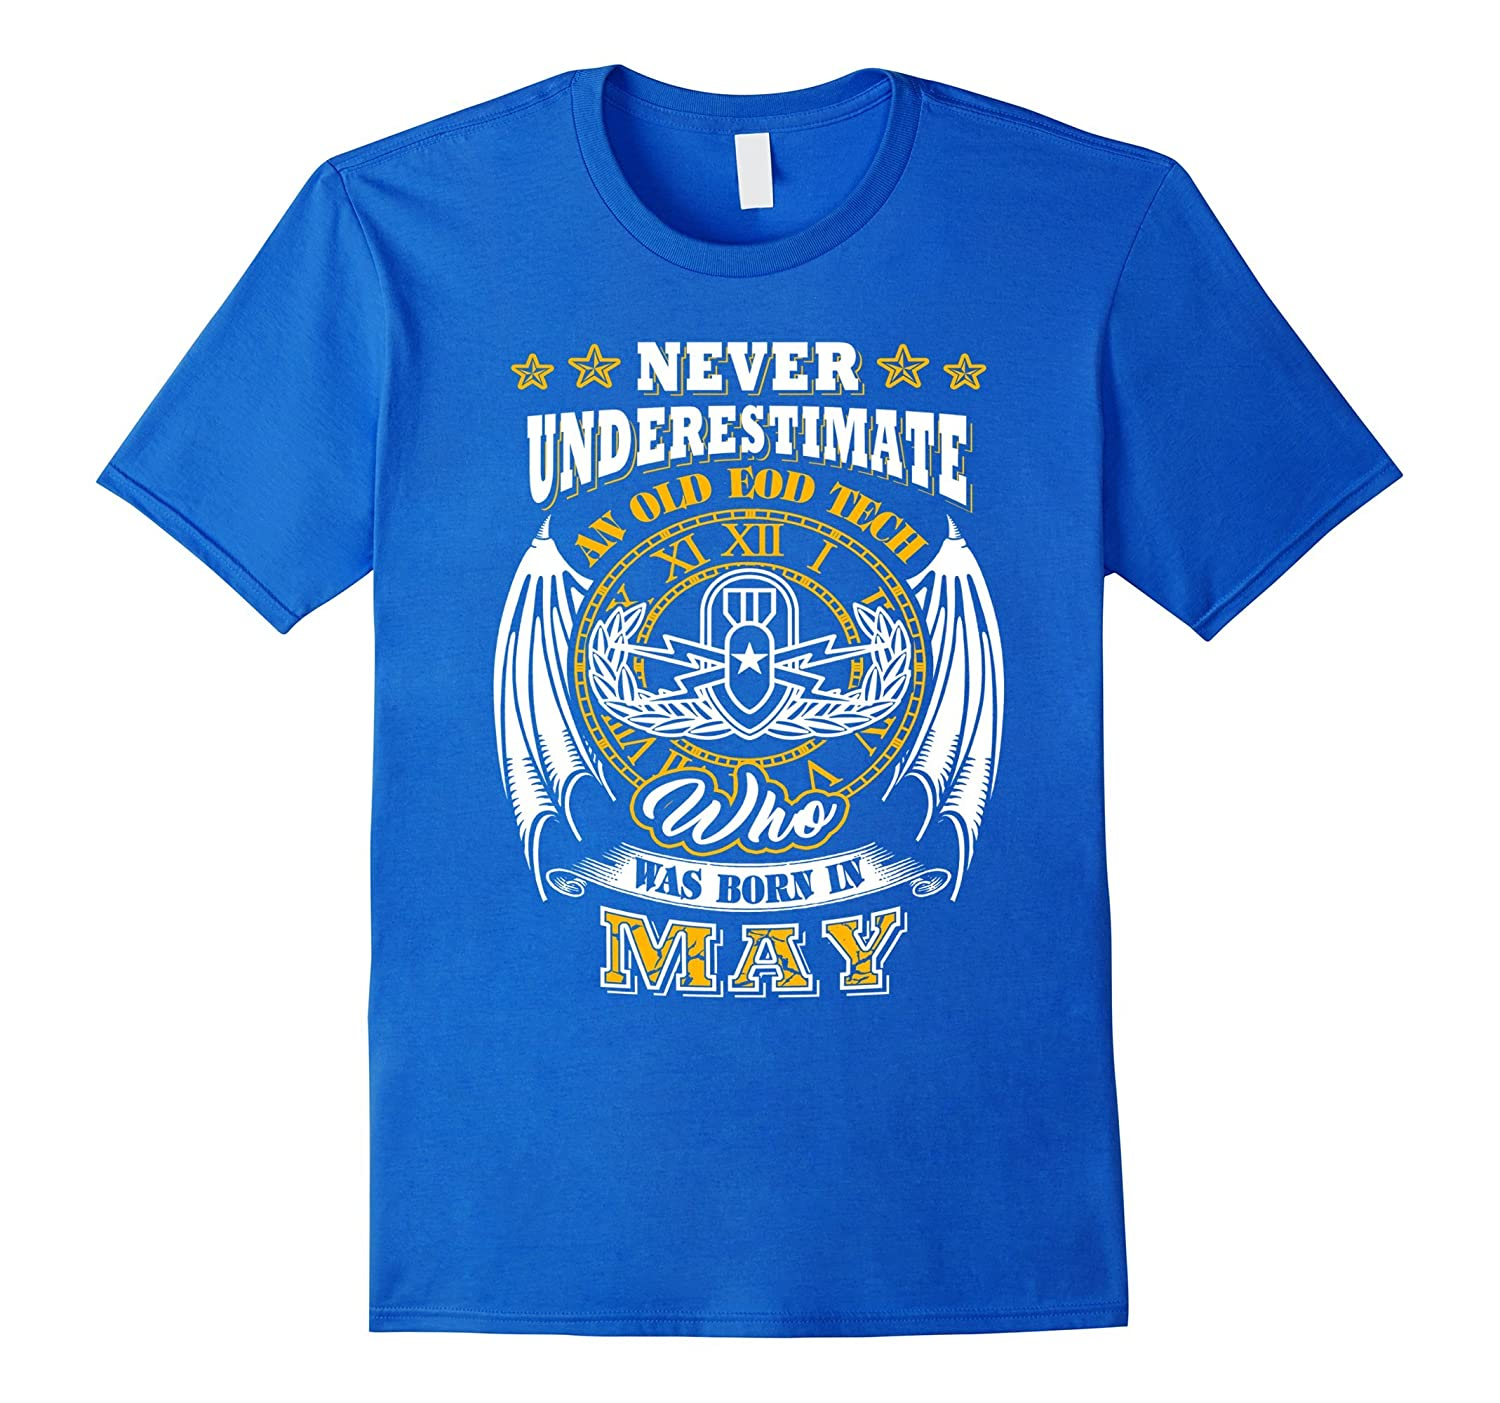 EOD shirt, Never underestimate an old eod tech who was born